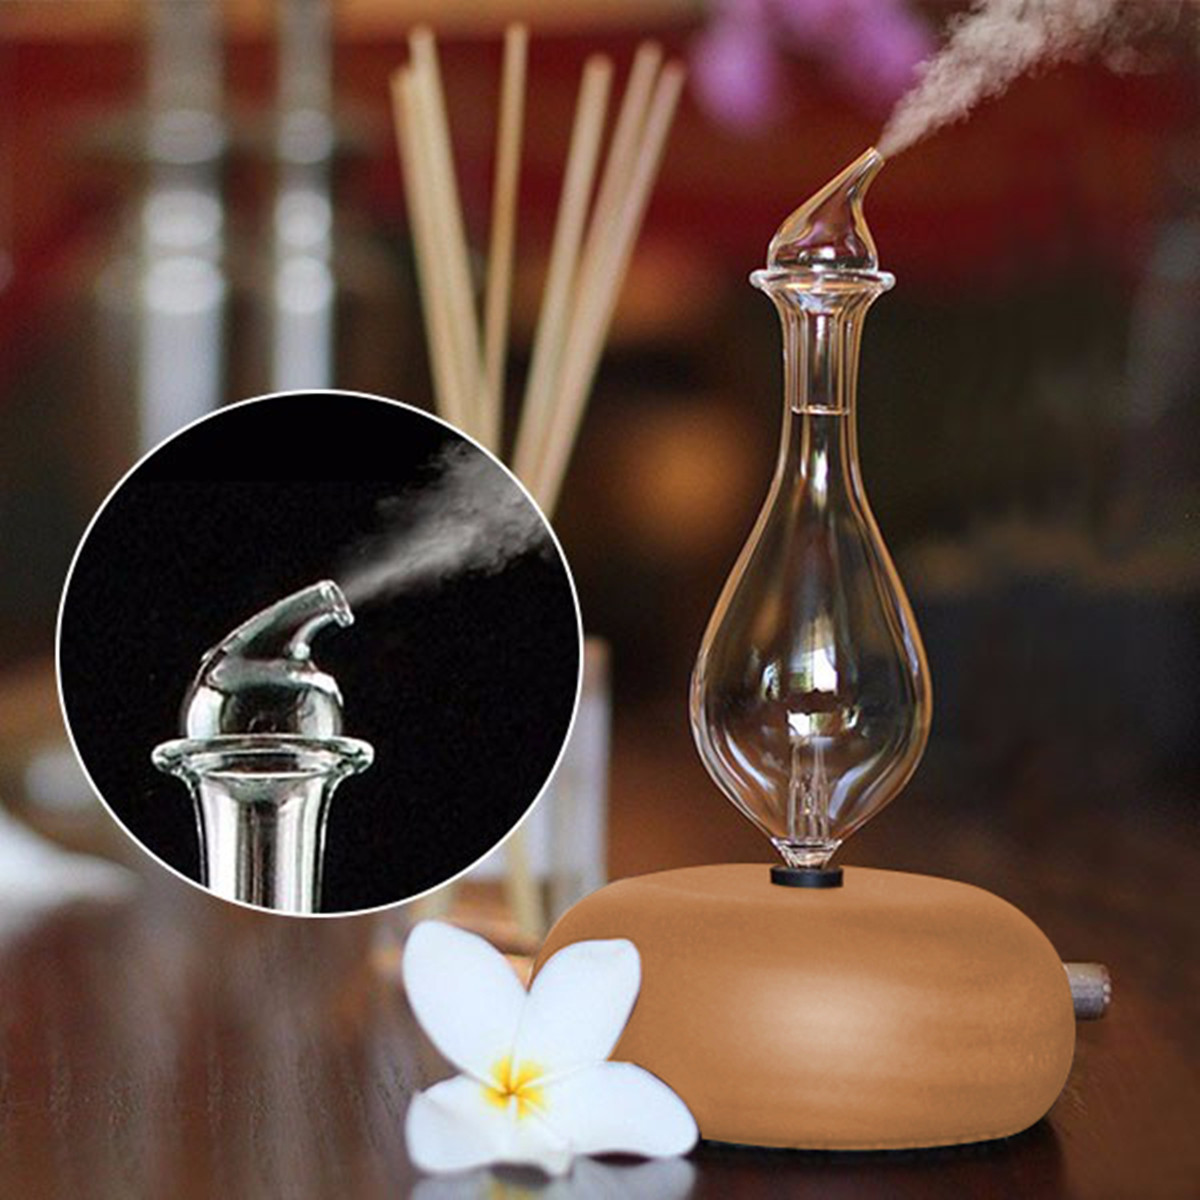 Wooden Glass Aromatherapy Pure Essential Oils Diffuser Air Nebulizer Humidifier Household Humidifier Air Conditioning Appliance